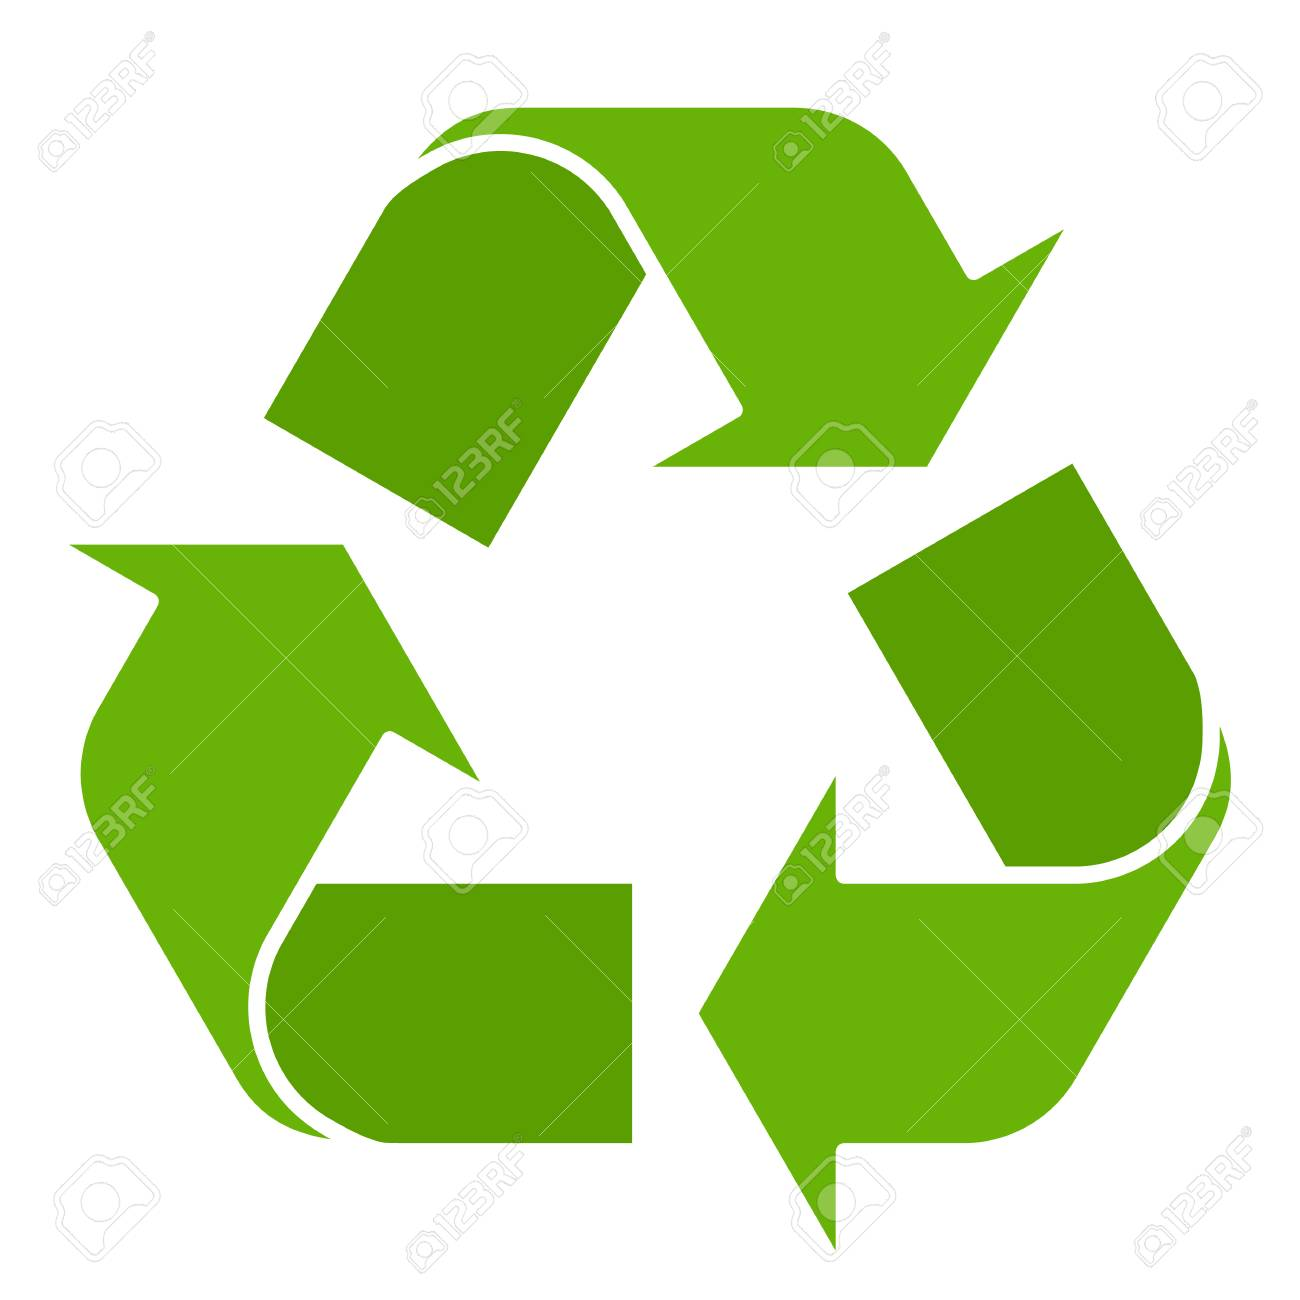 vector illustration of green recycle symbol isolated on white rh 123rf com recycle symbol vector image recycle symbol vector image